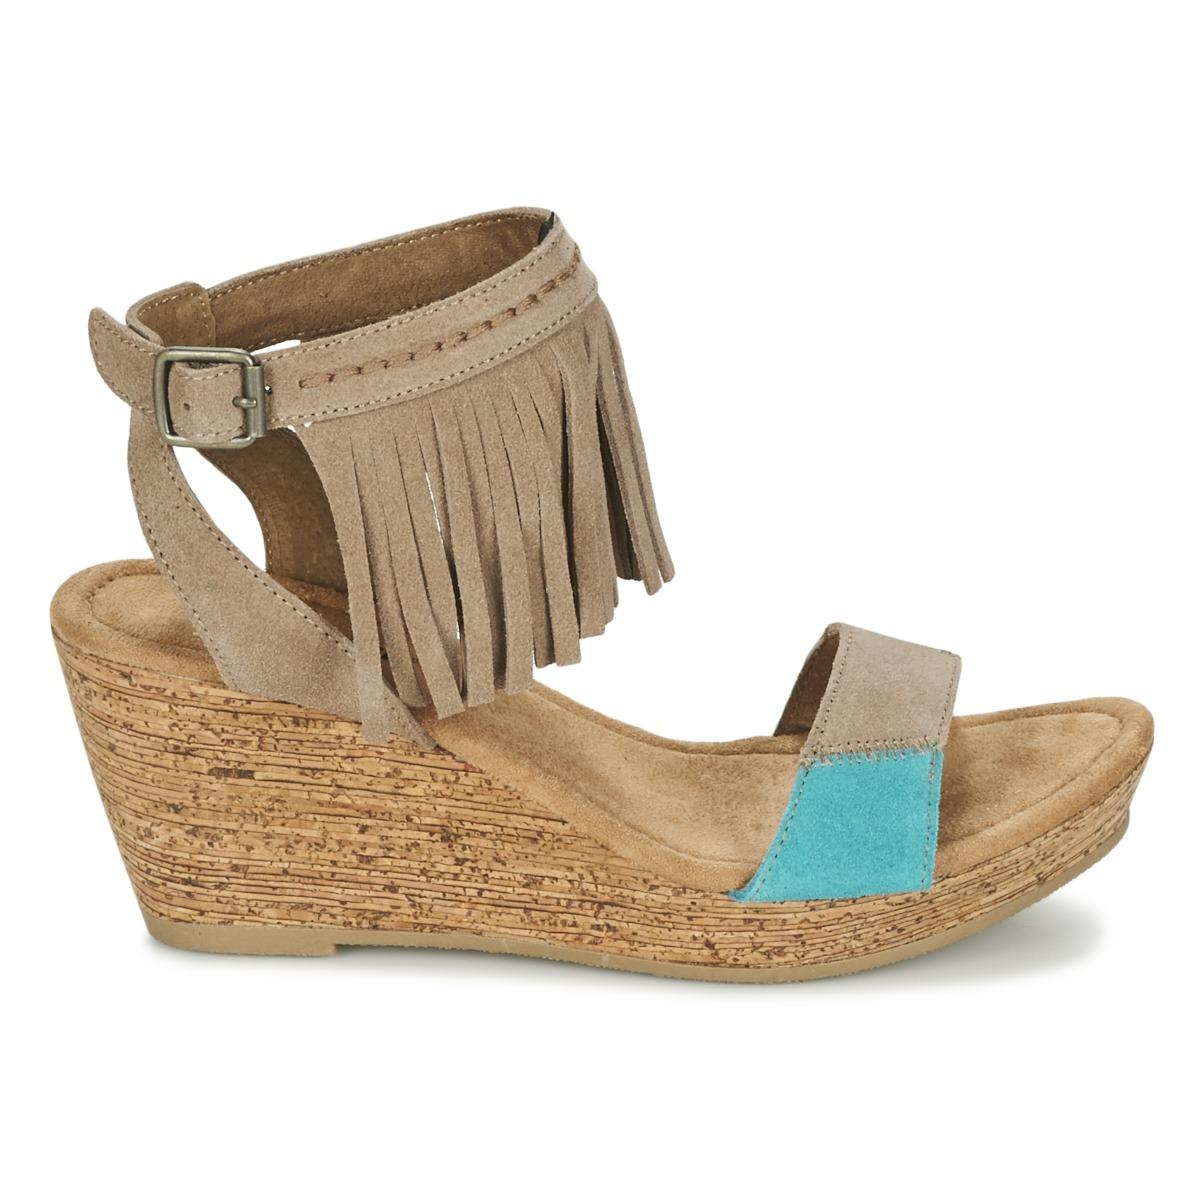 ffd7e8b51 Minnetonka Poppy Sandals in Brown - Lyst